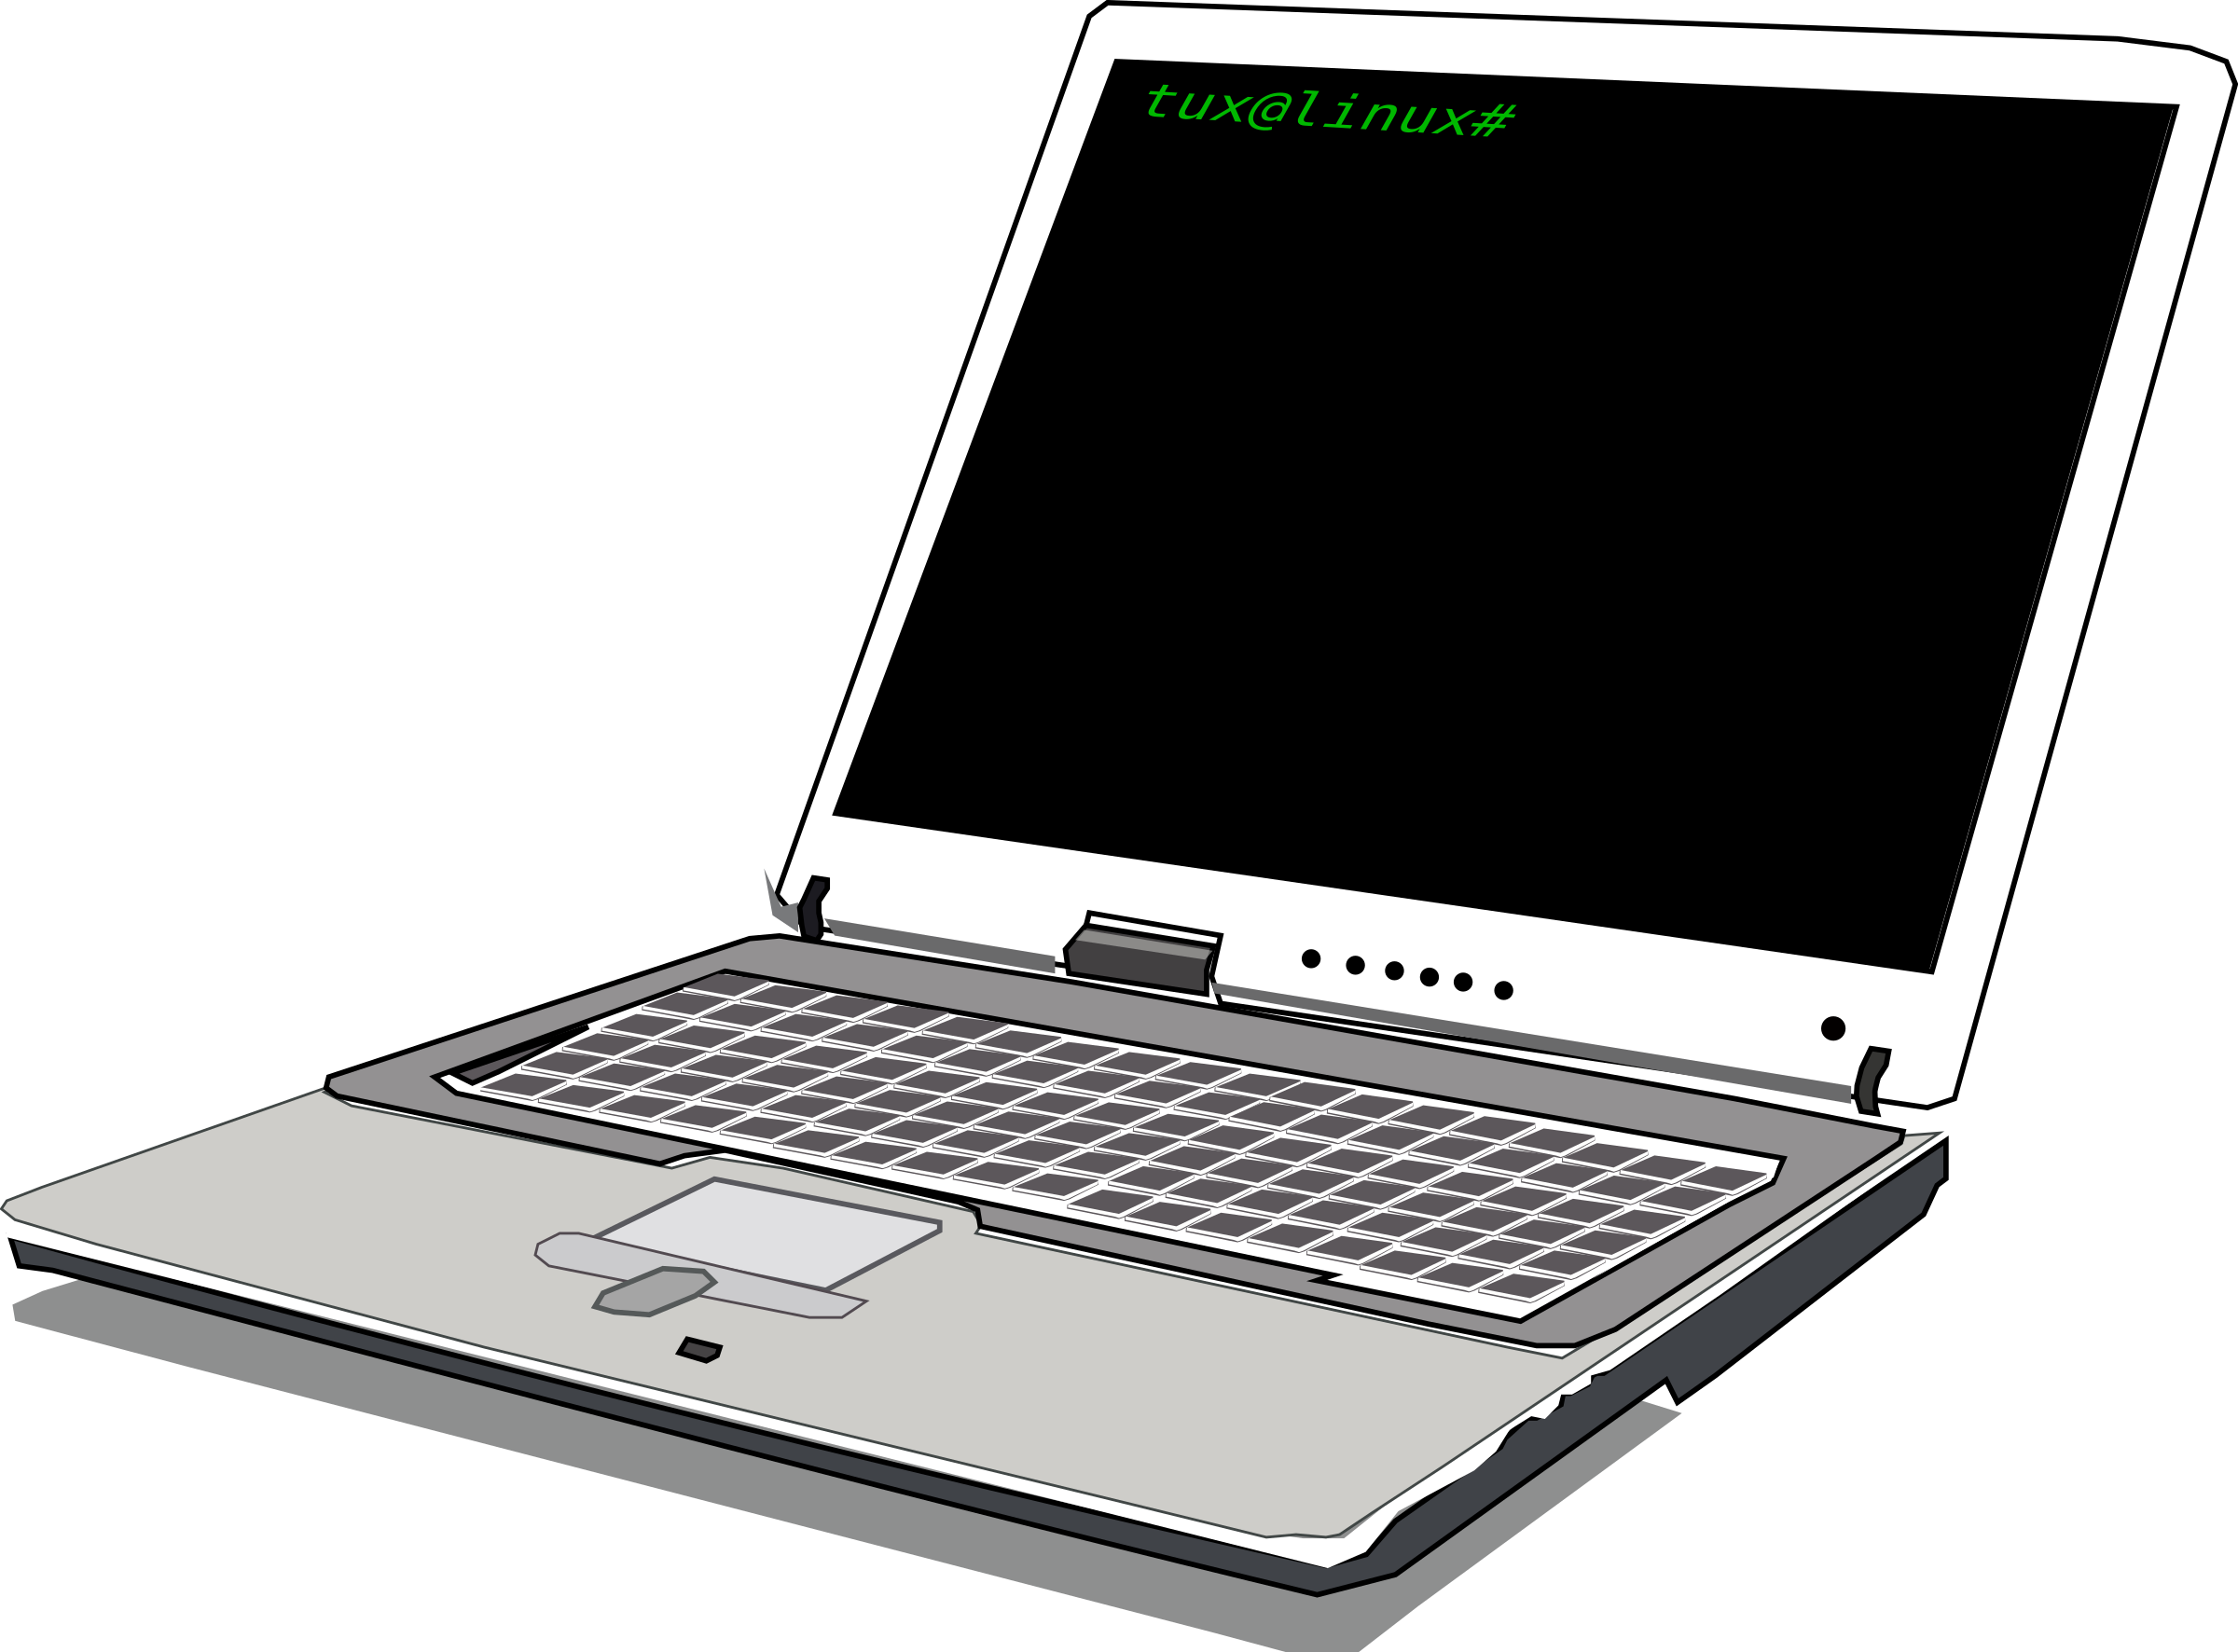 Notebook big image png. Electronics clipart laptop